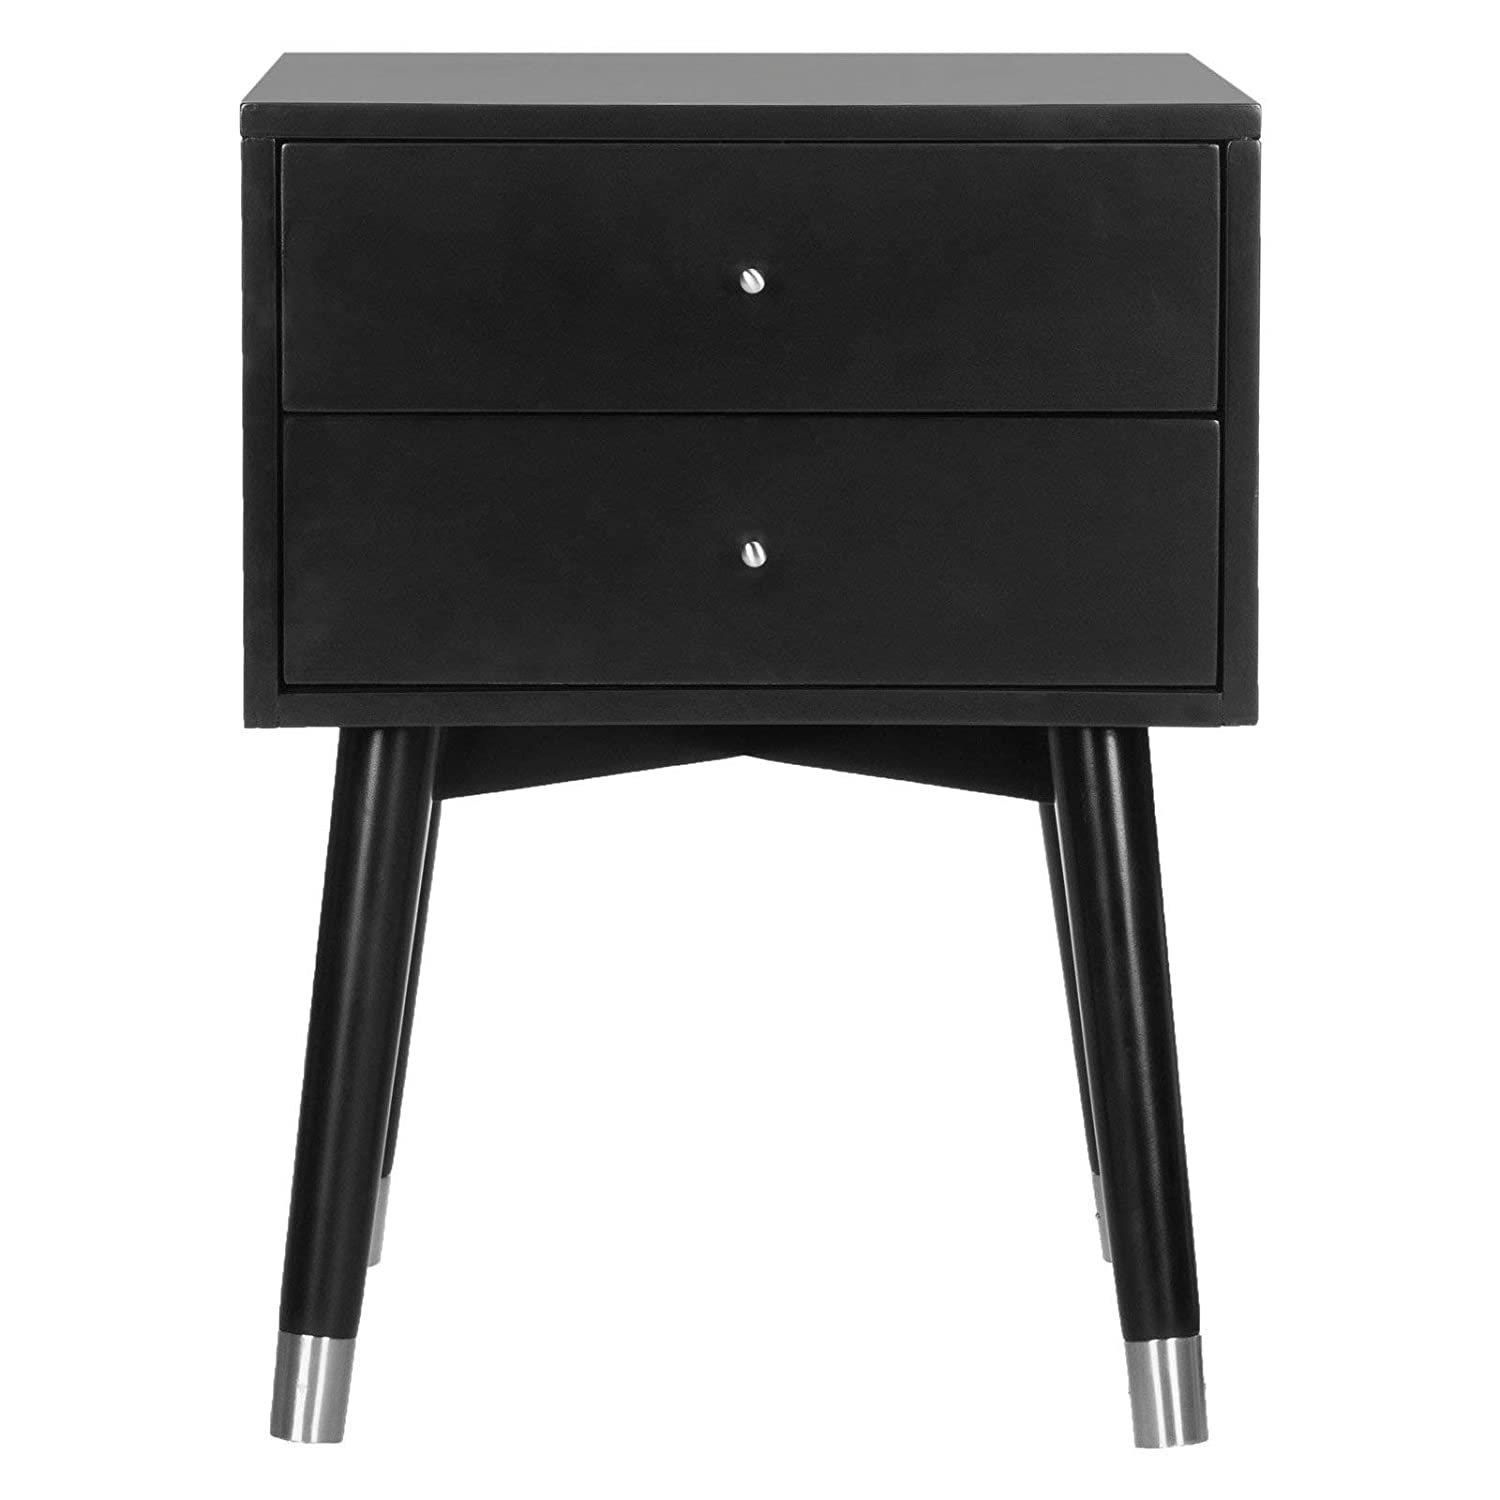 Retro 2 drawer nightstand black silver finish contemporary design durable frame bedroom furniture bedside table bundle with our expert guide with tips